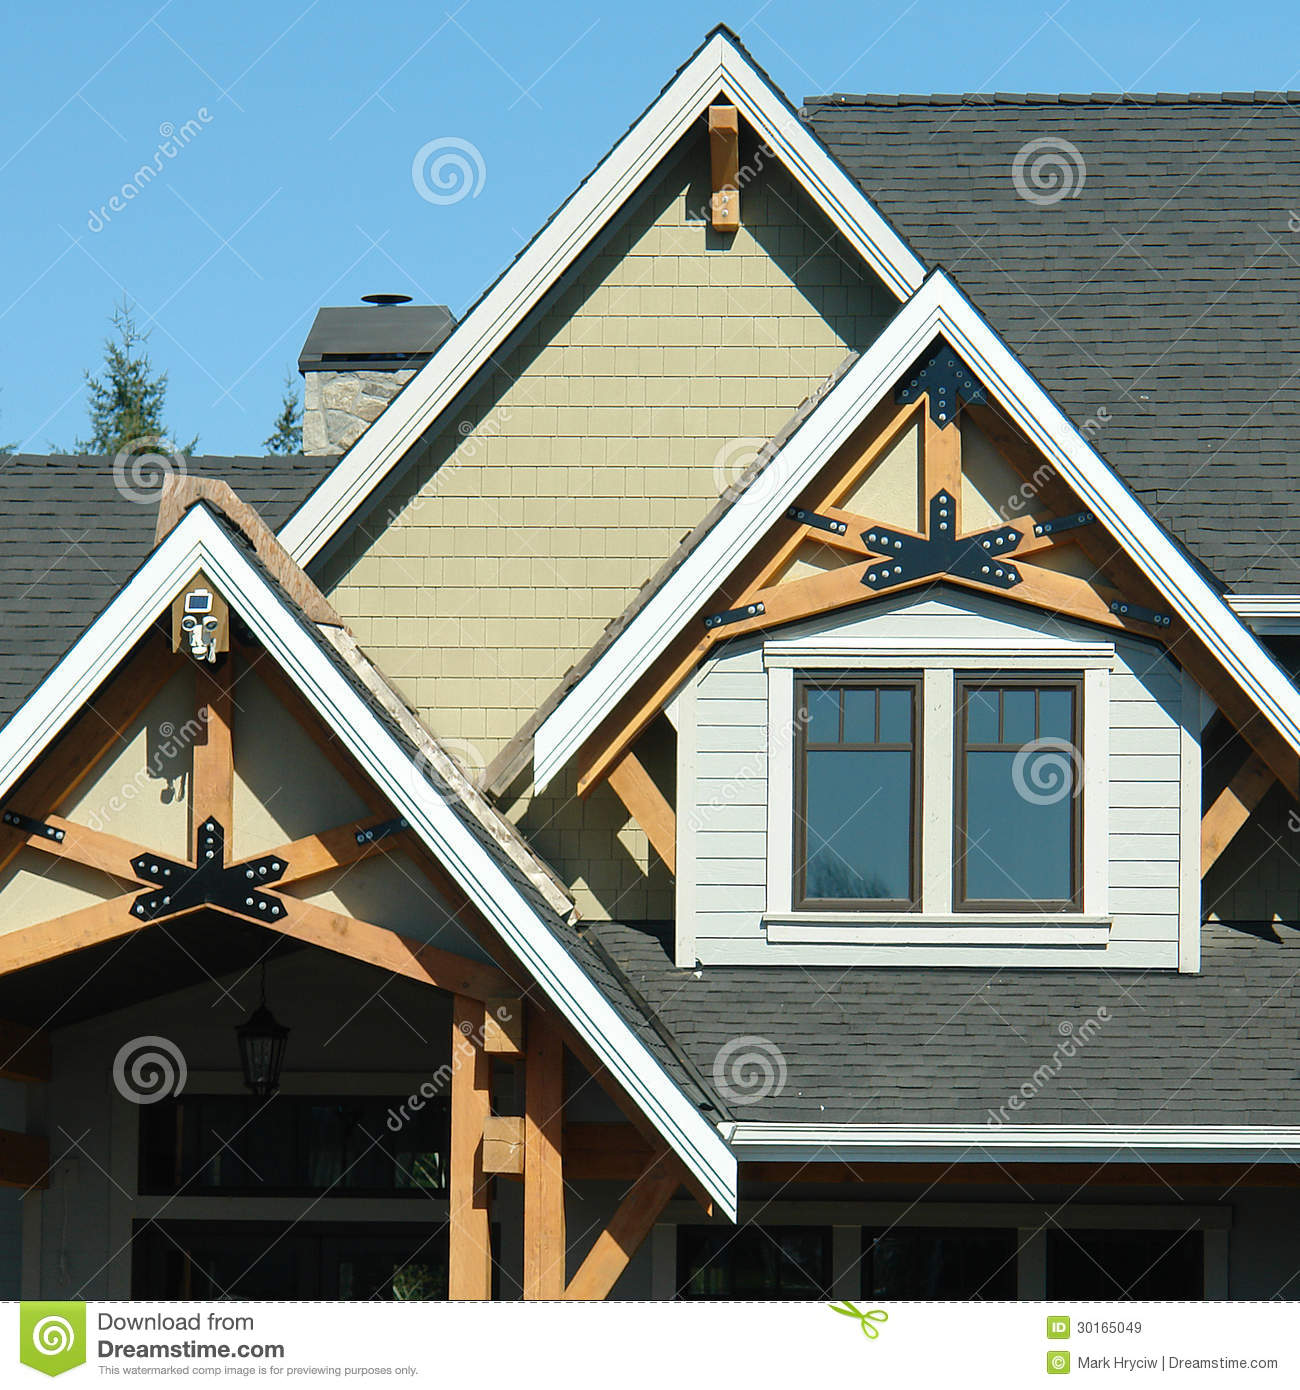 Home exterior roof details royalty free stock images for Custom home design online